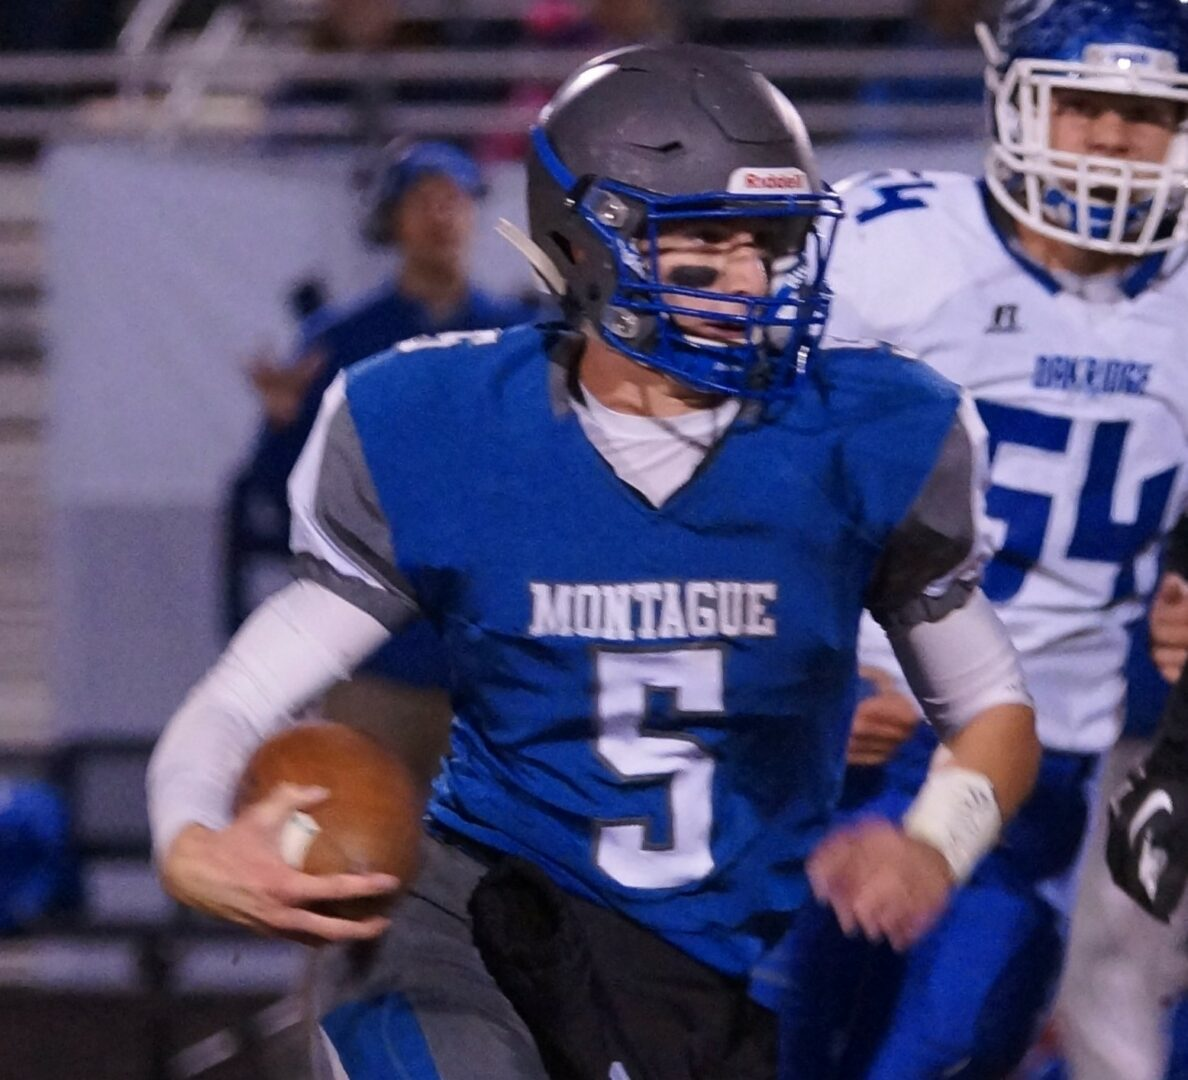 Buchberger's big interceptions allowed Montague to steal the West Michigan Conference title away from Oakridge